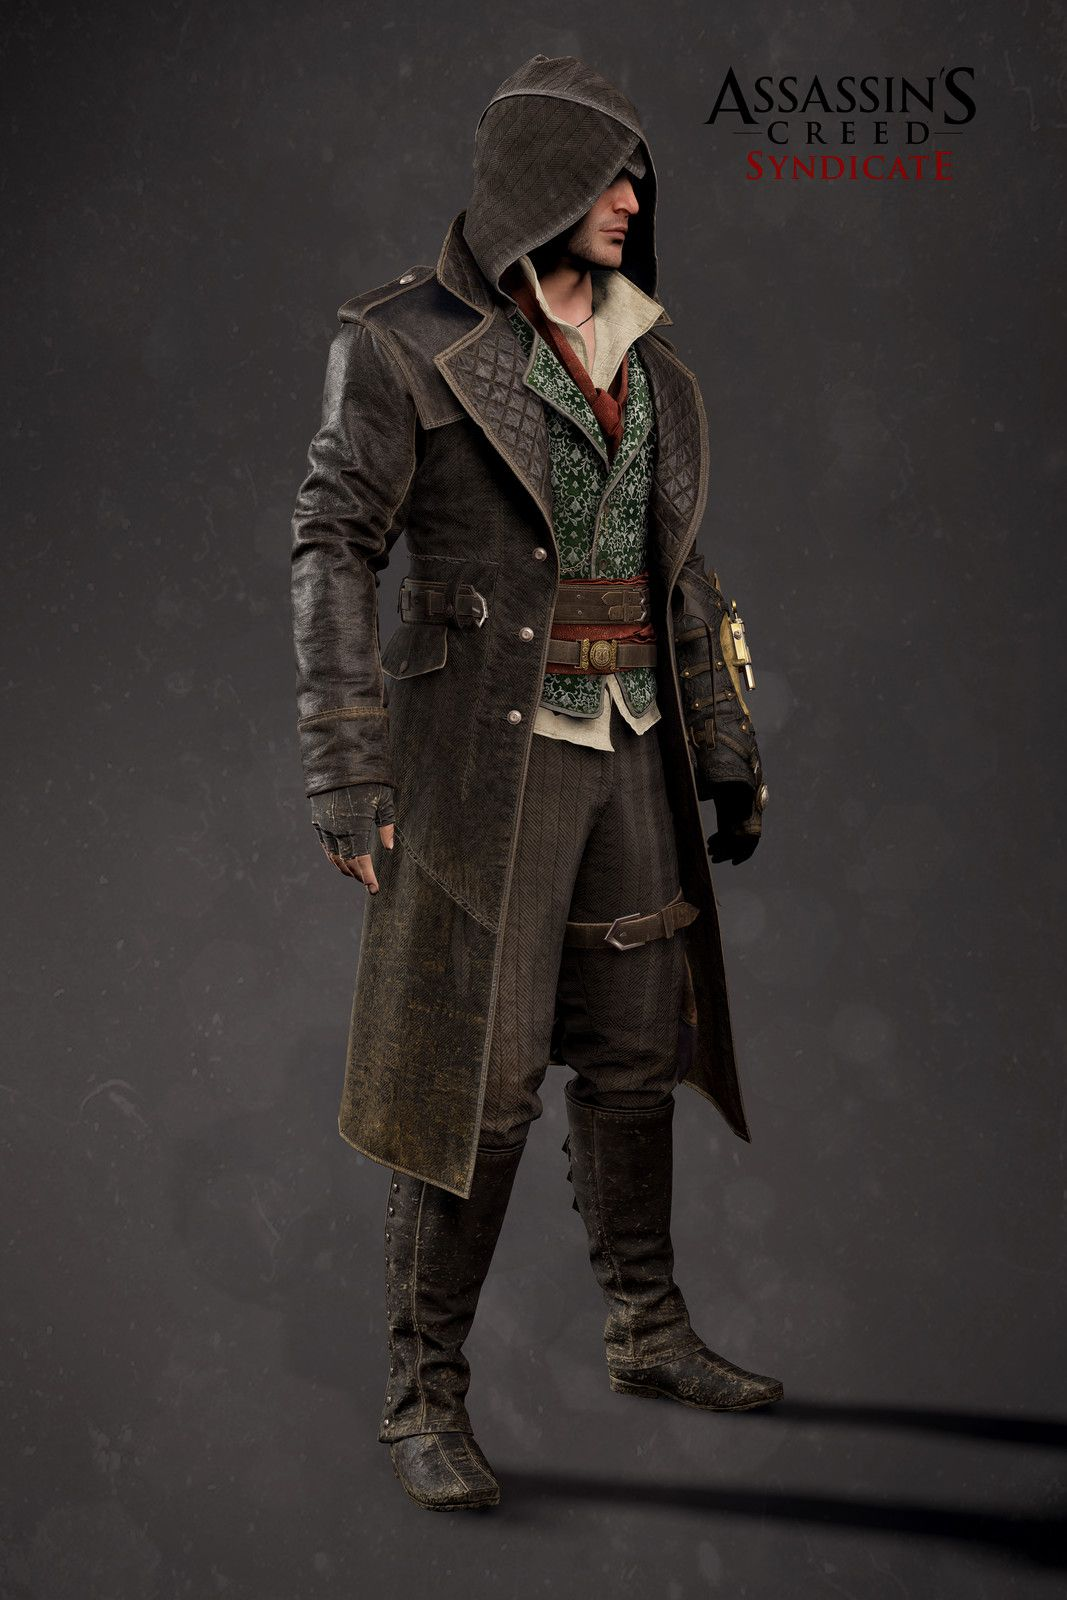 Assassin S Creed Syndicate Jacob Outfit 03 Mathieu Goulet Assassins Creed Outfit Assassins Creed Assassins Creed Syndicate